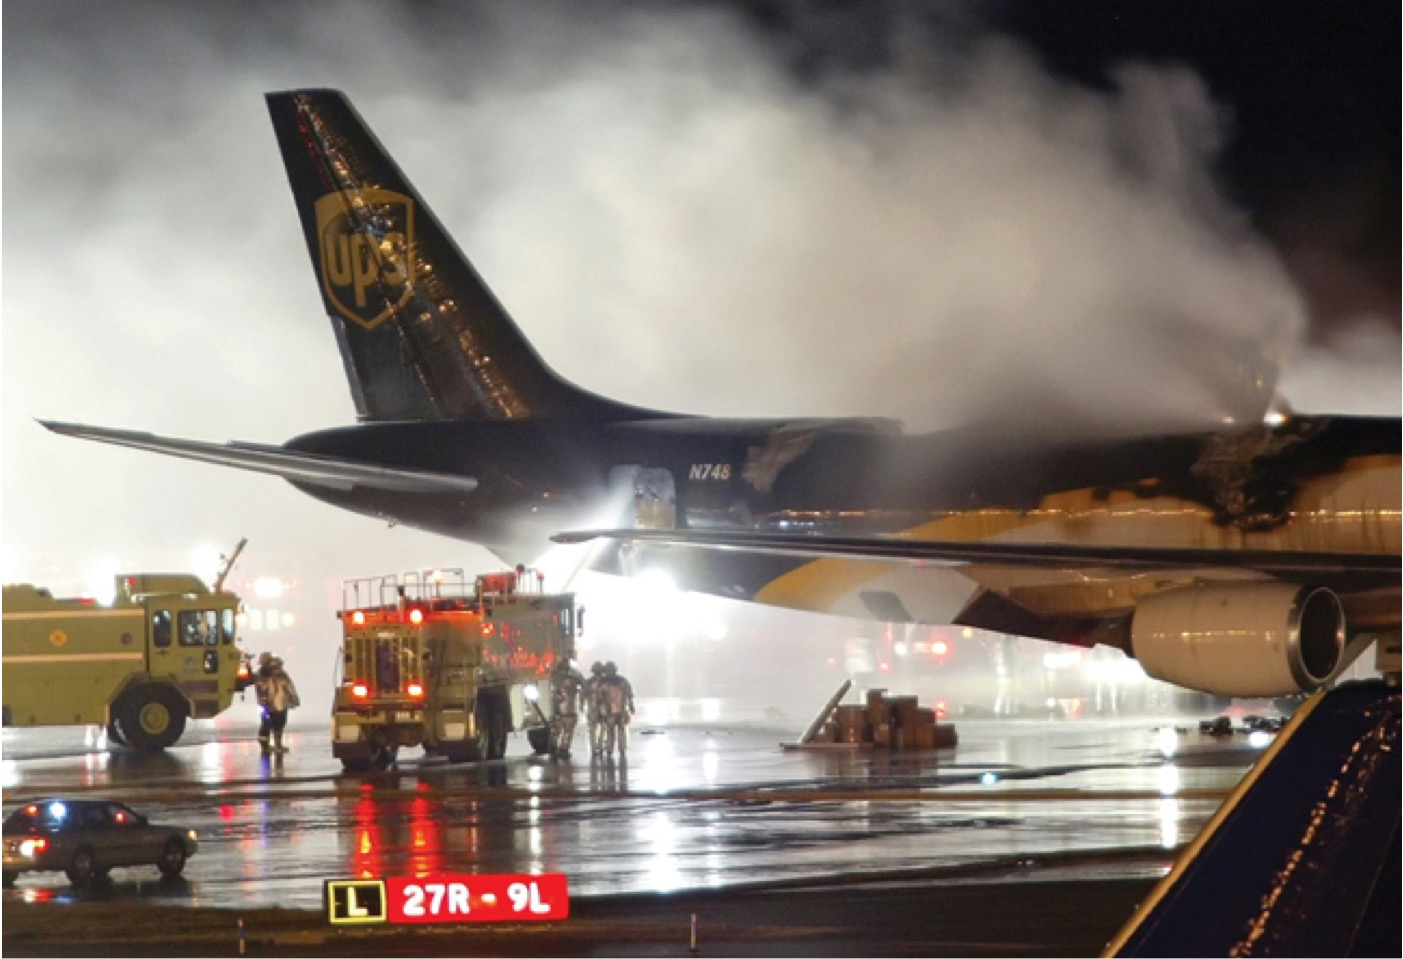 An emergency crew arrives on the scene where a UPS 747-400 Boeing cargo plane caught fire due to lithium ion batteries in Dubai on Sept. 5, 2010. (Courtesy of National Safety Transport Board)